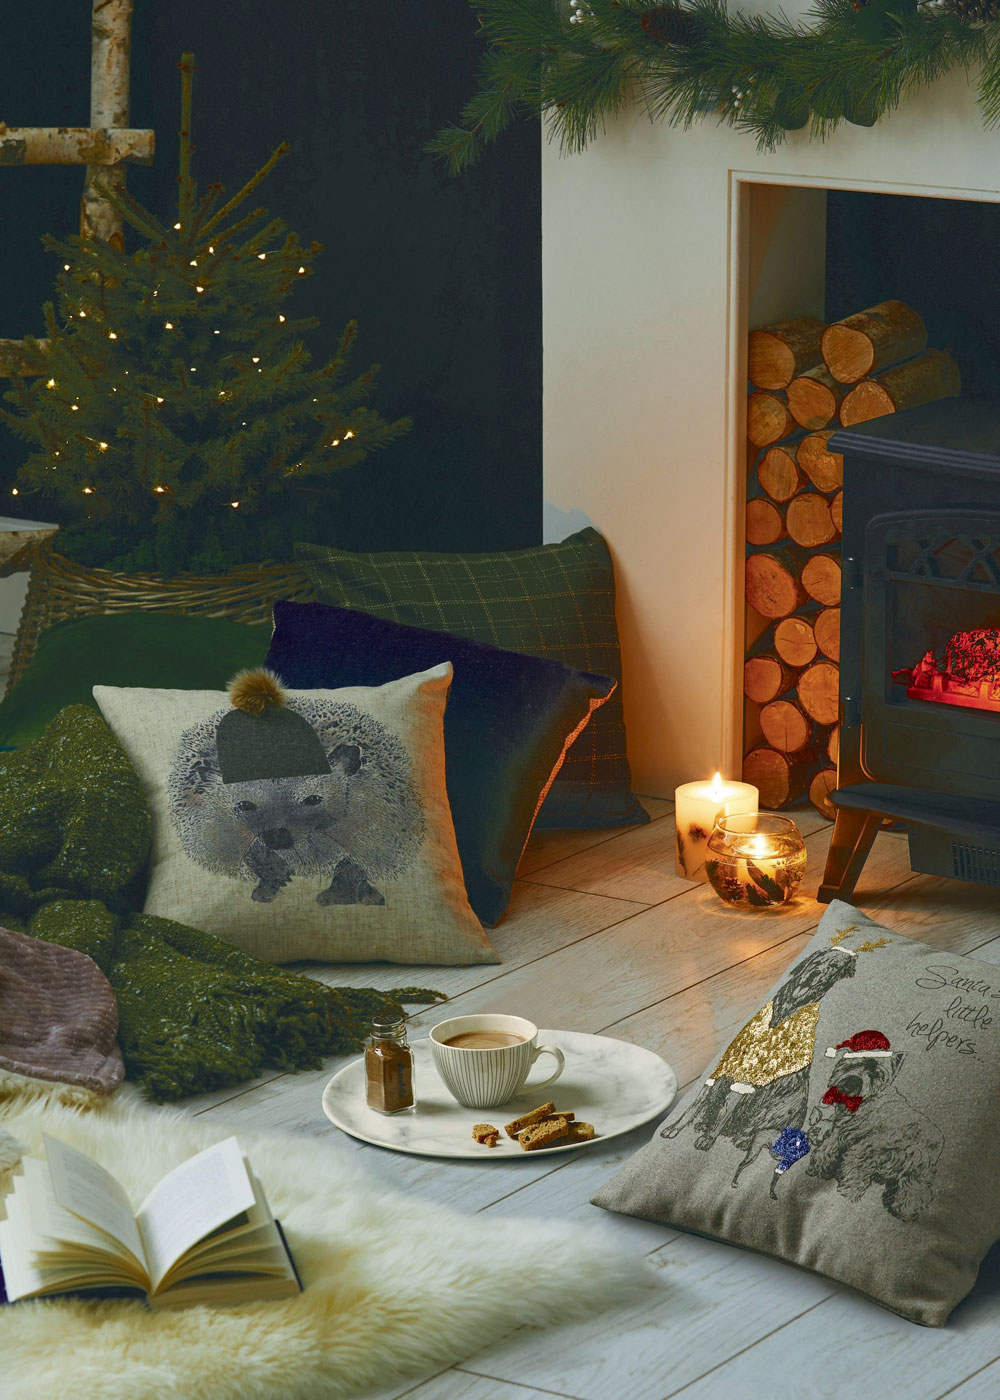 Looking for budget Christmas decorations to deck your home out this festive season? Look no further. In today's post, I'm sharing seven of the best shops on the high street to buy cheap Christmas decorations, from tree decorations, to Christmas Eve boxes, to Christmas dinnerware. Click through for some last minute simple holiday decorating ideas from Dunelm #budgetchristmas #cheapchristmas #christmasdecor